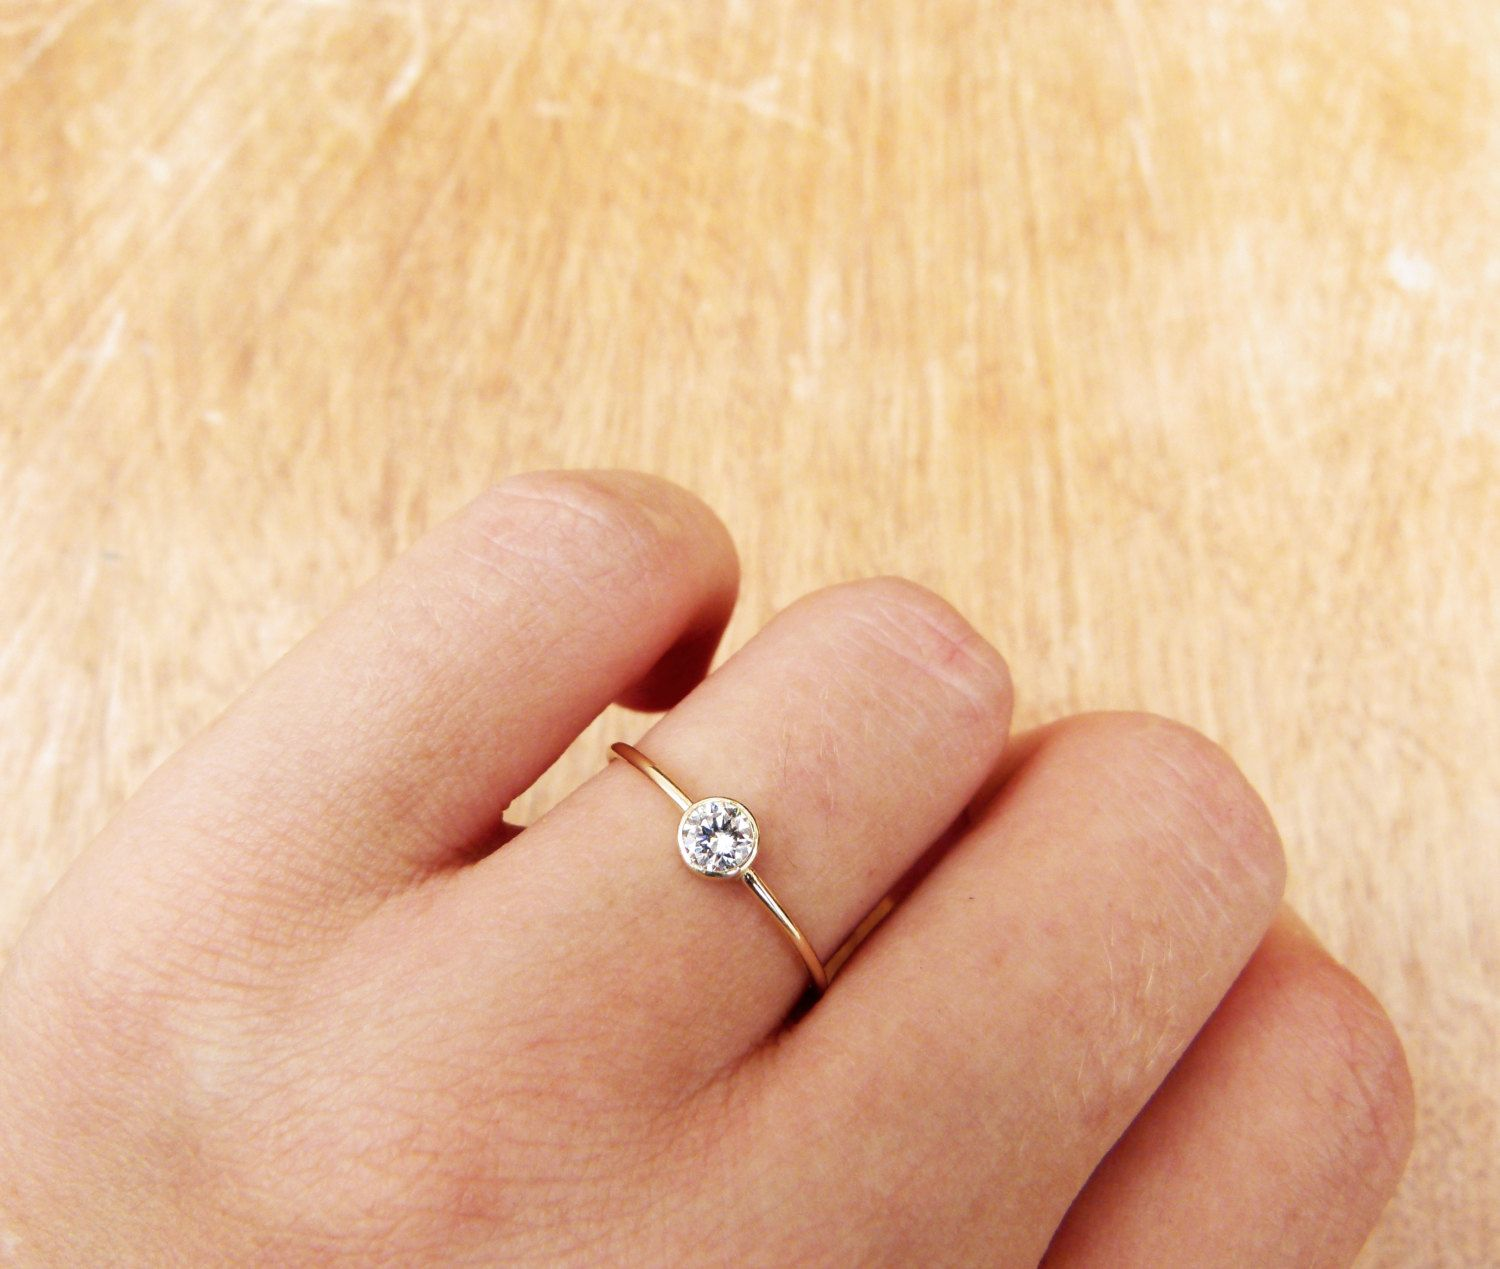 simple wedding ring Delicate Engagement Ring Simple Engagement Ring 0 2 Carat Diamond Minimalist Diamond Ring Round Cut Diamond Ring